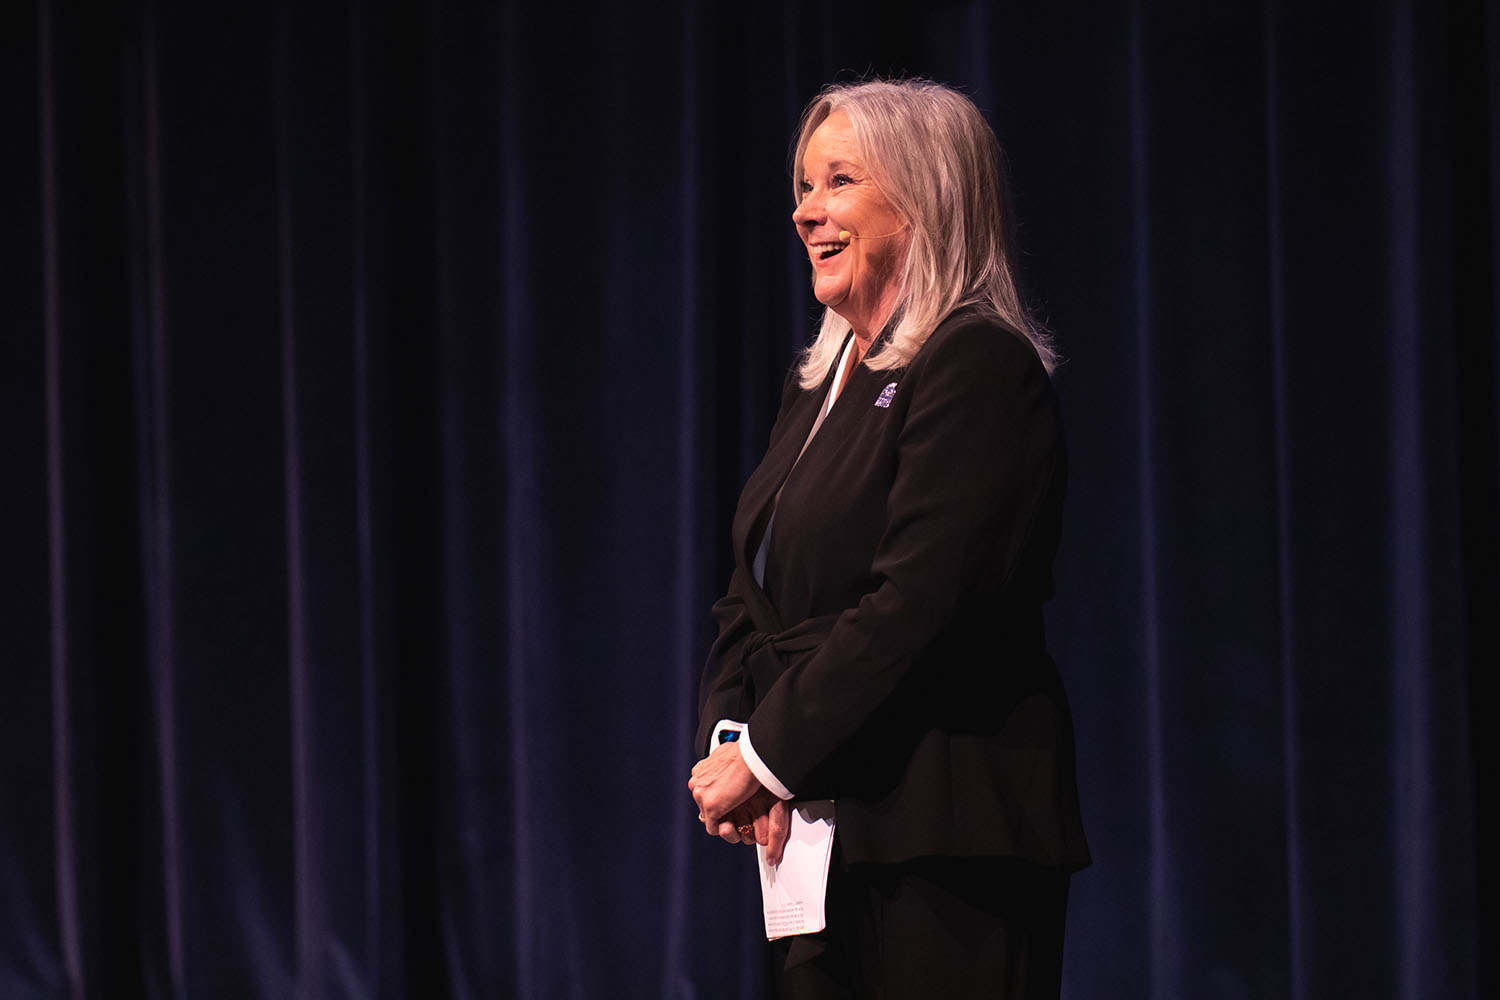 """University of West Florida President Martha D. Saunders reflected on a year of extraordinary accomplishments before turning her attention to """"big goals"""" during her 2019 State of the University address on Sept. 27."""